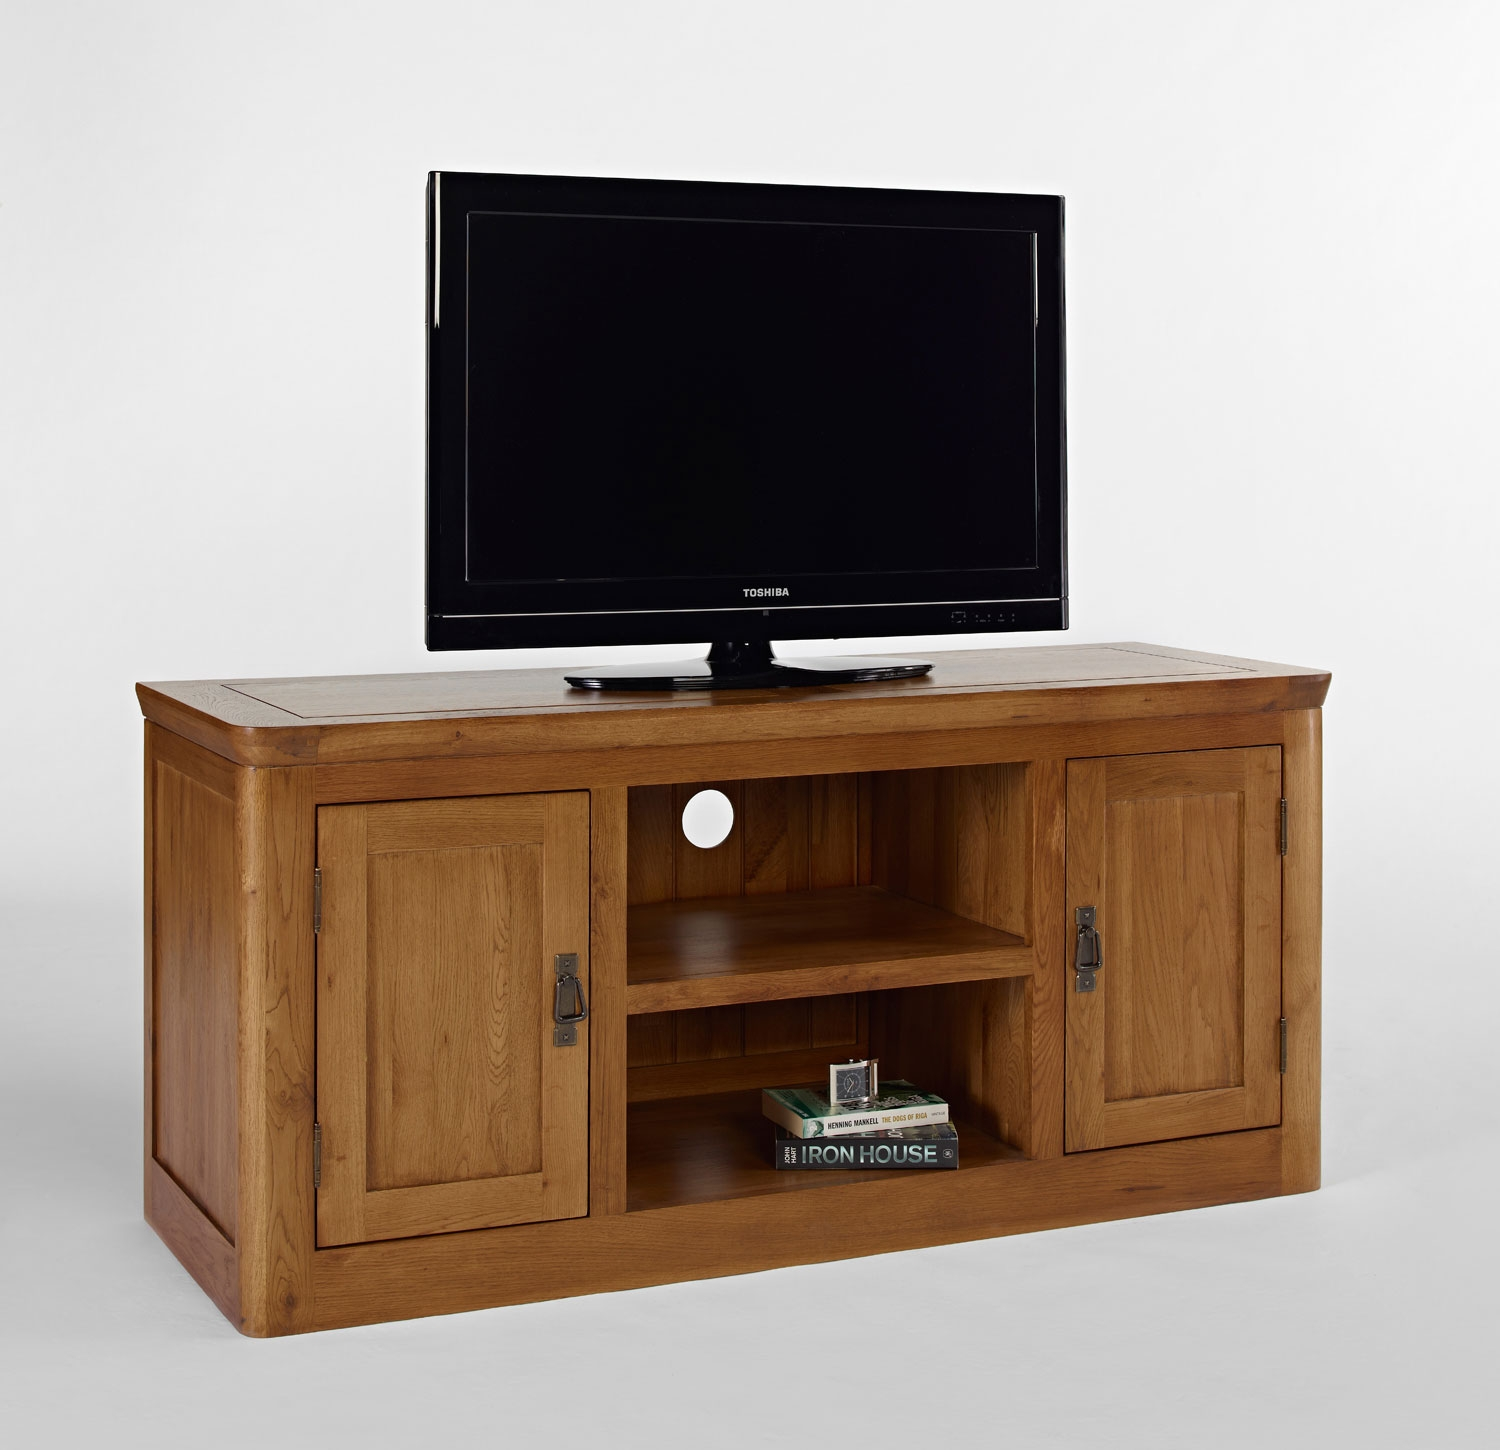 oak corner tv stand. Black Bedroom Furniture Sets. Home Design Ideas